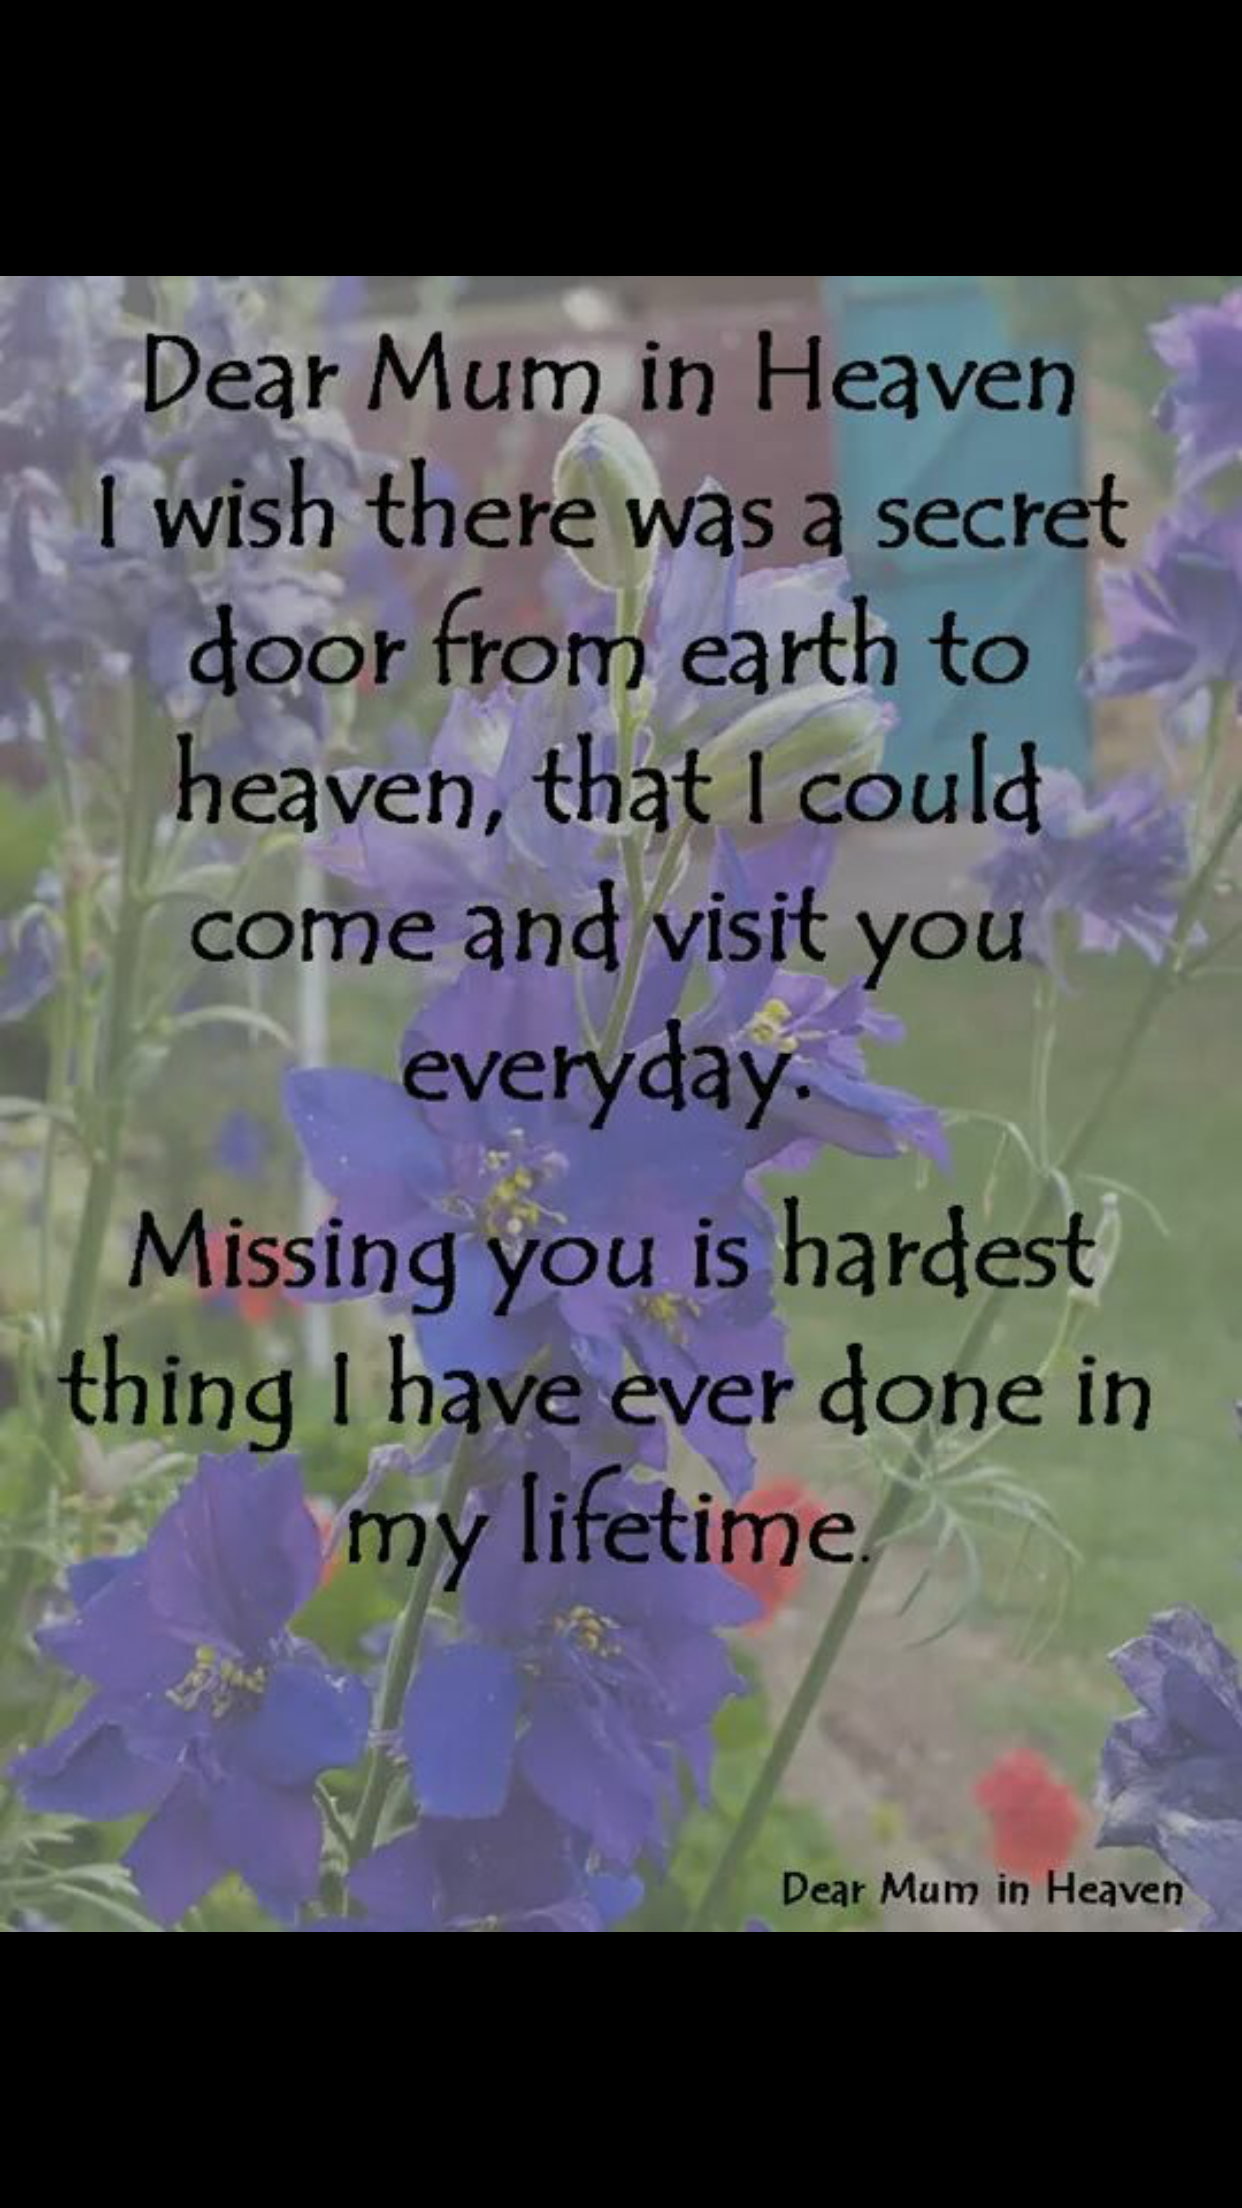 Missing You Mom Dad Jim I Miss My Mom Mum Quotes Remembering Mom